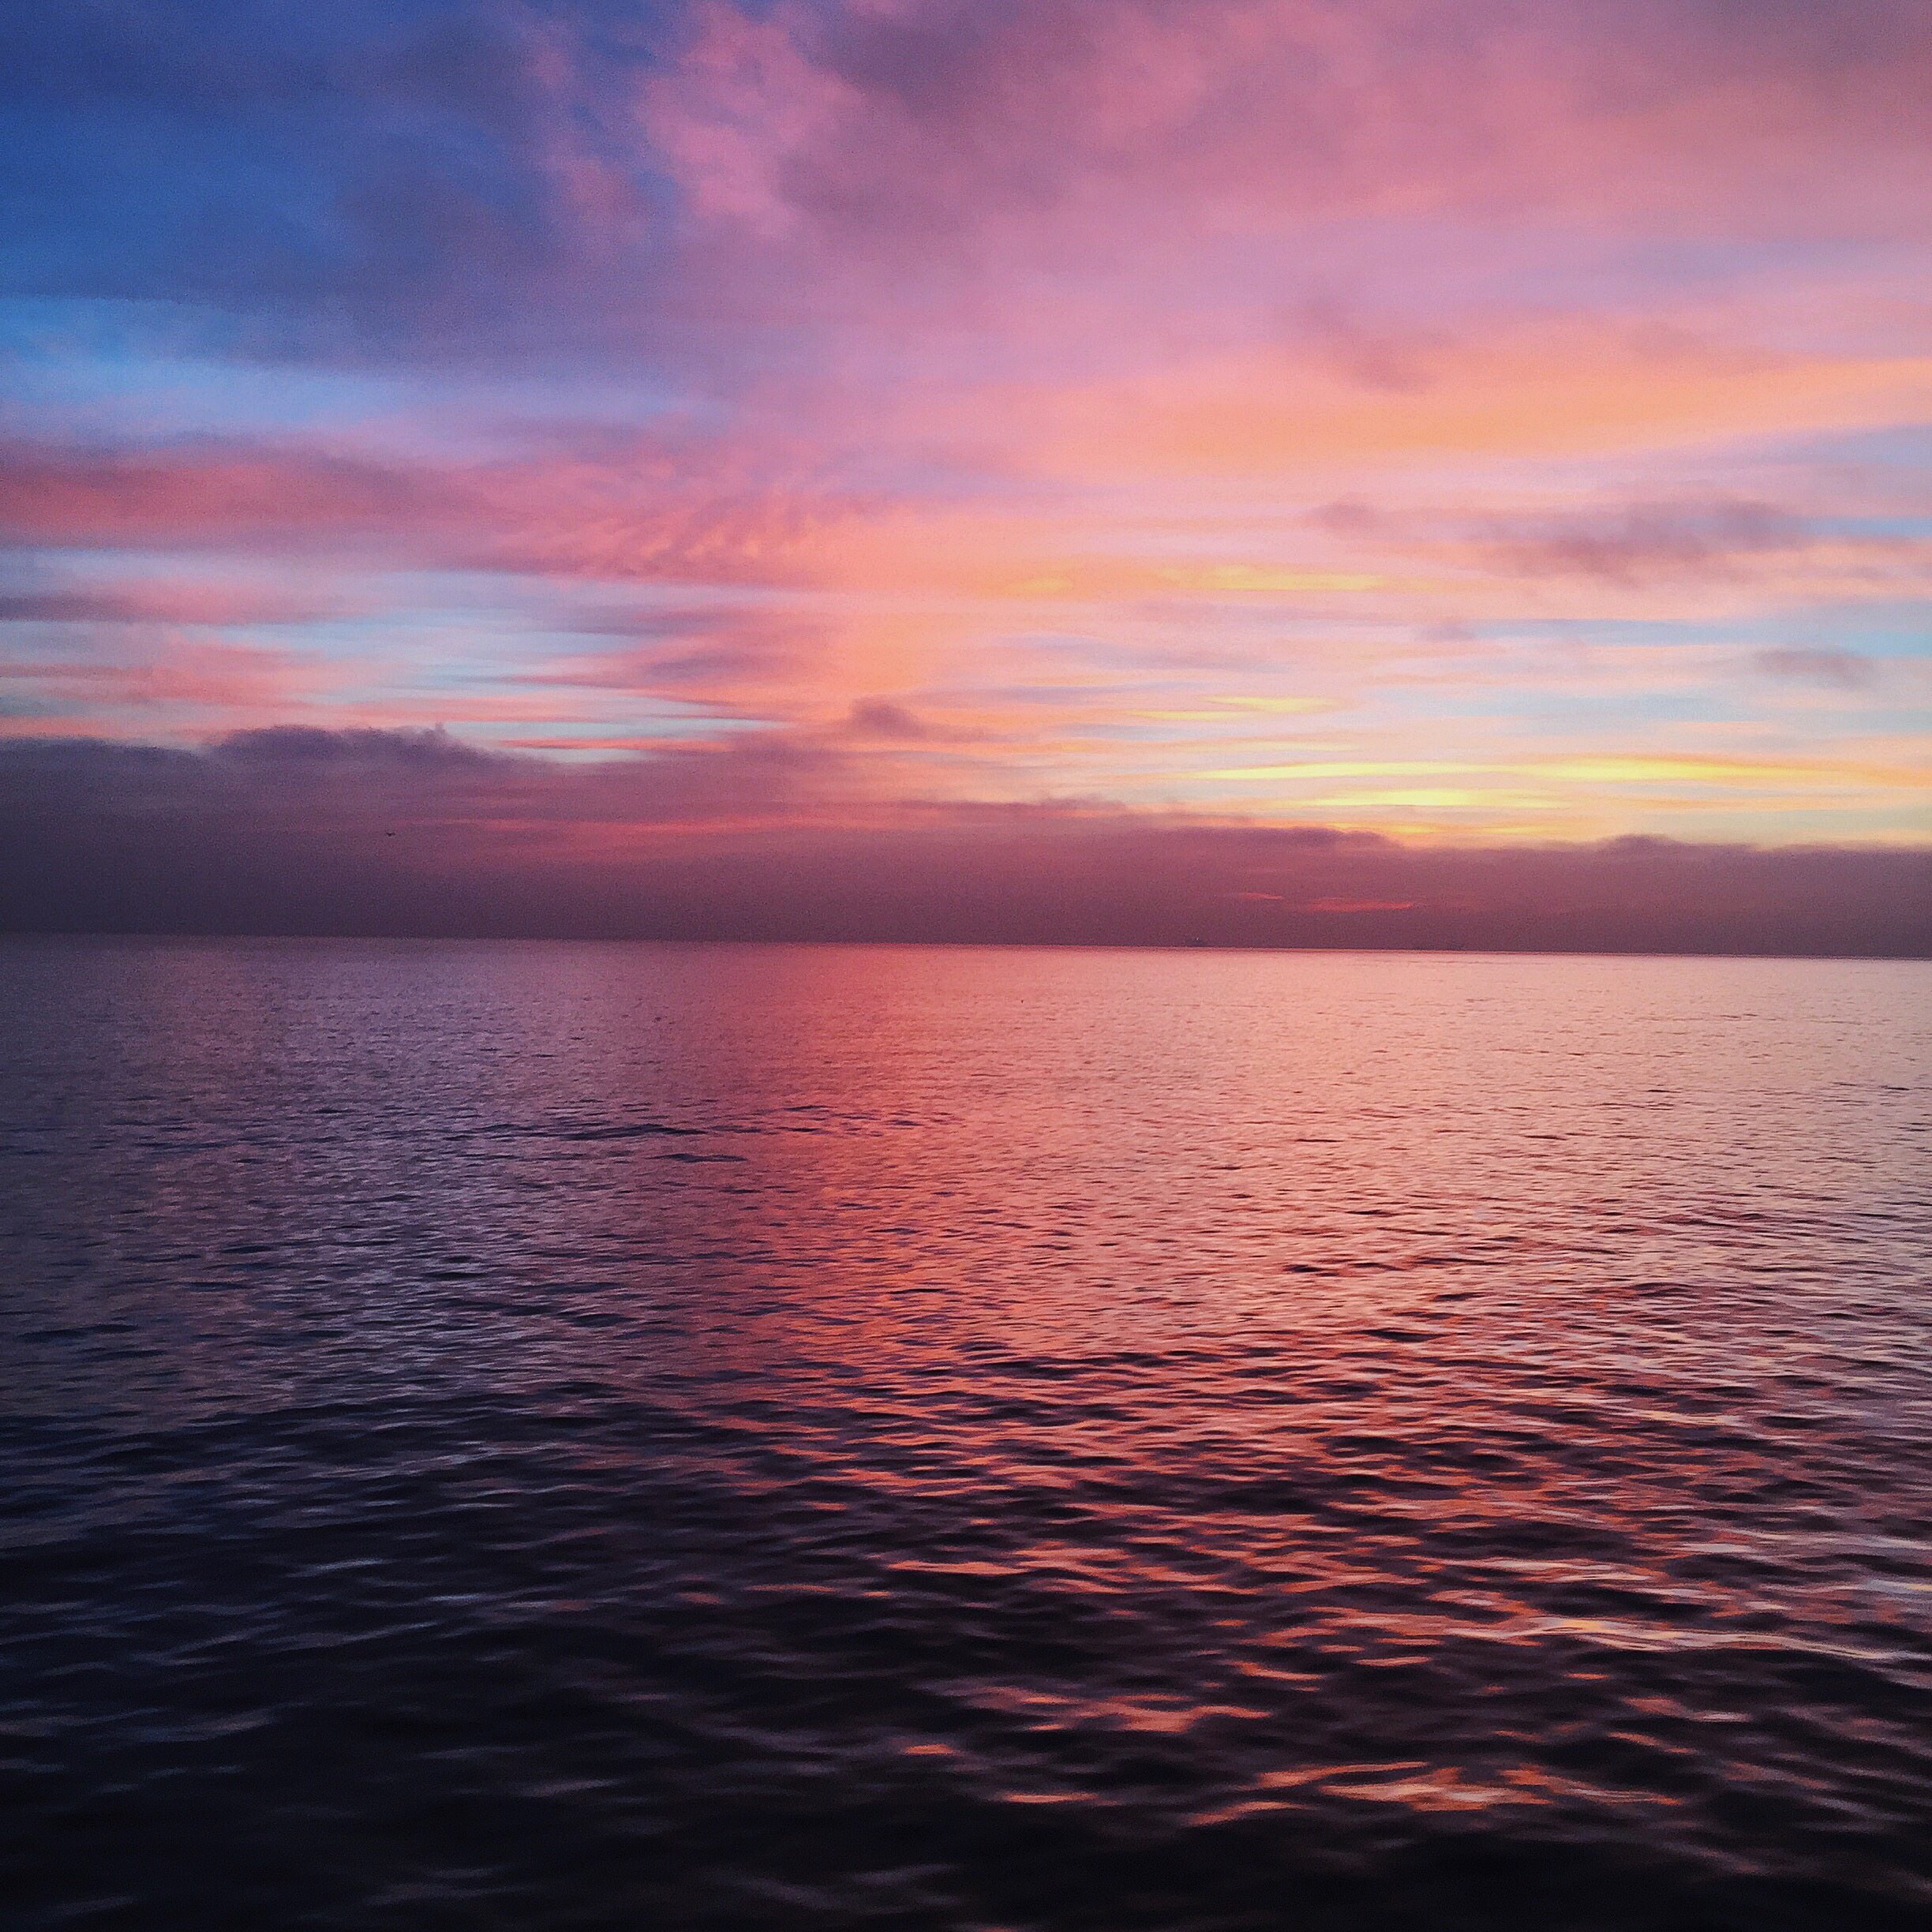 Sunrise from the Catalina Express